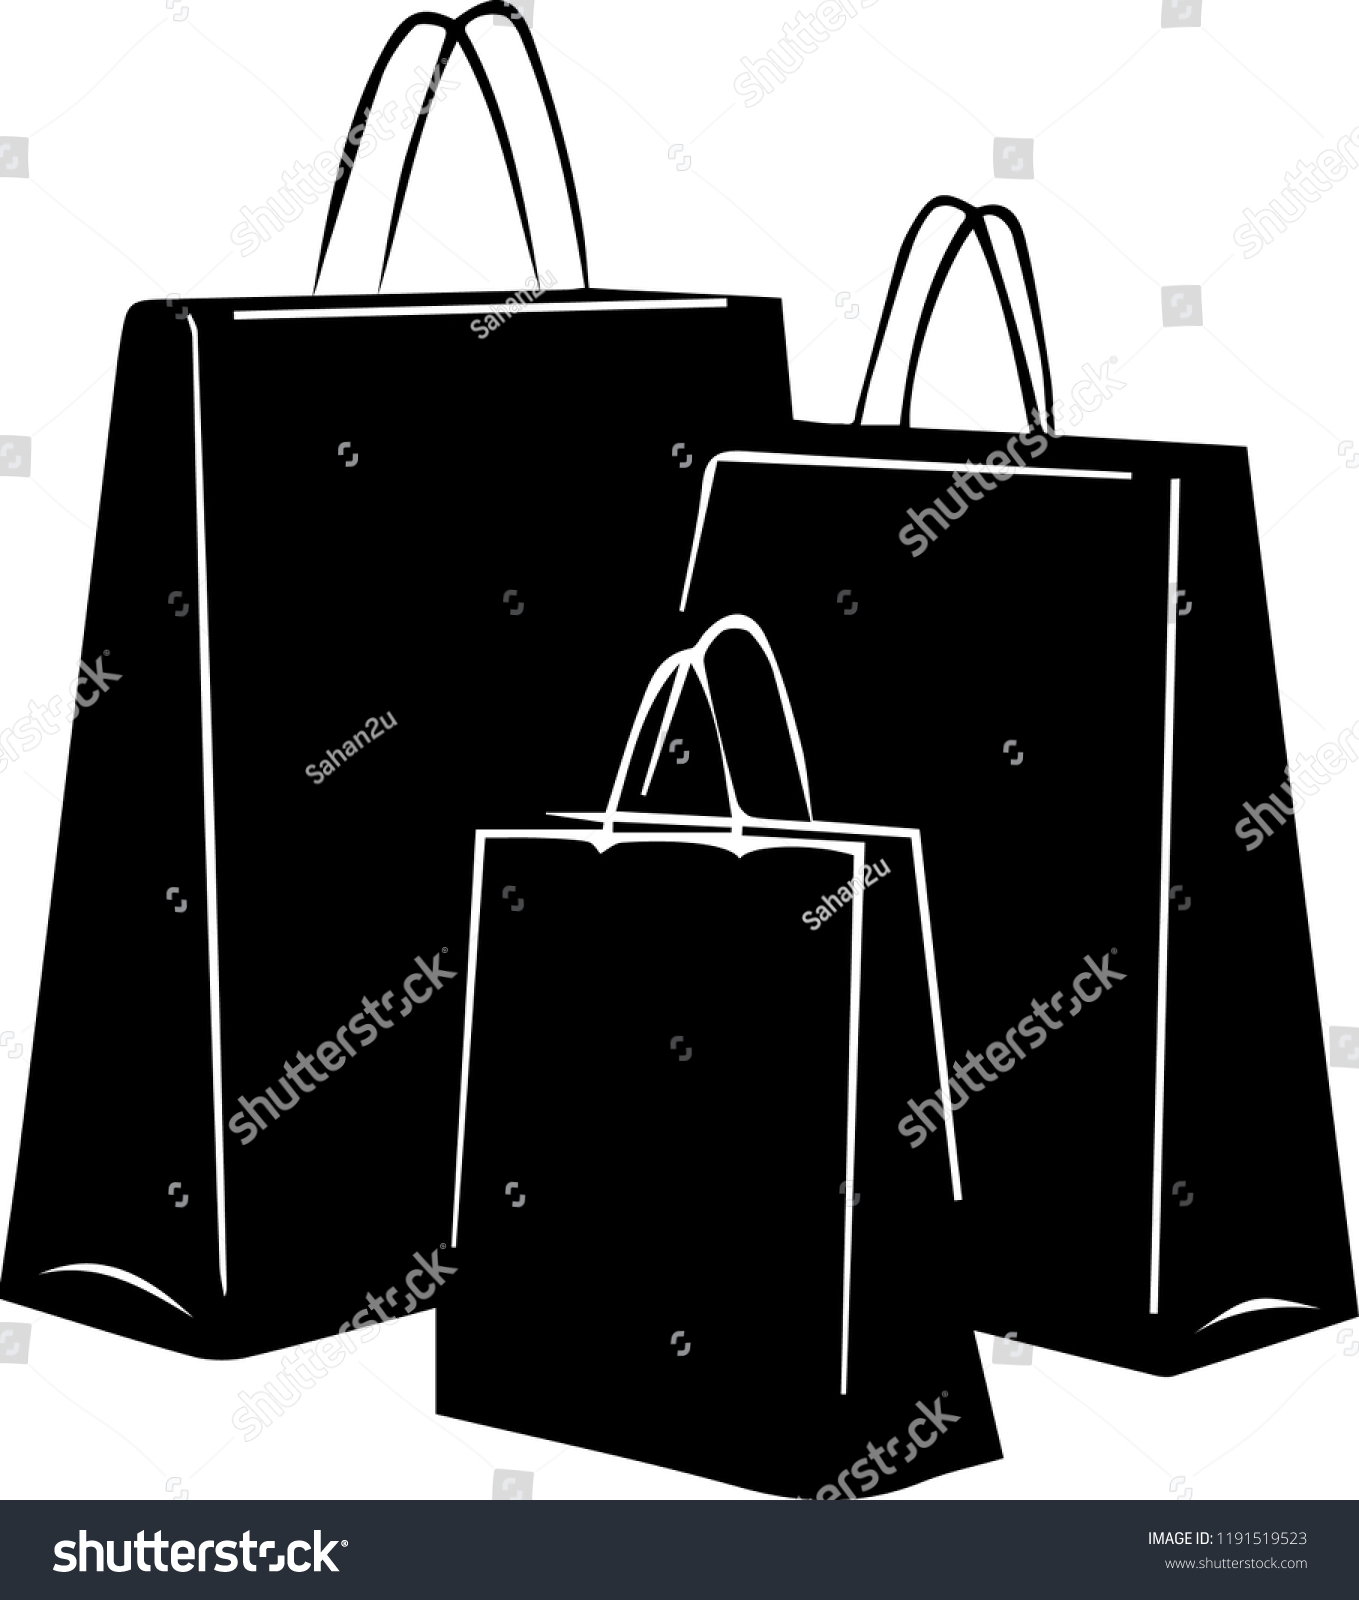 Three black silhouette fashion grocery paper bag for shopping items or logo  icon 9f442049e21